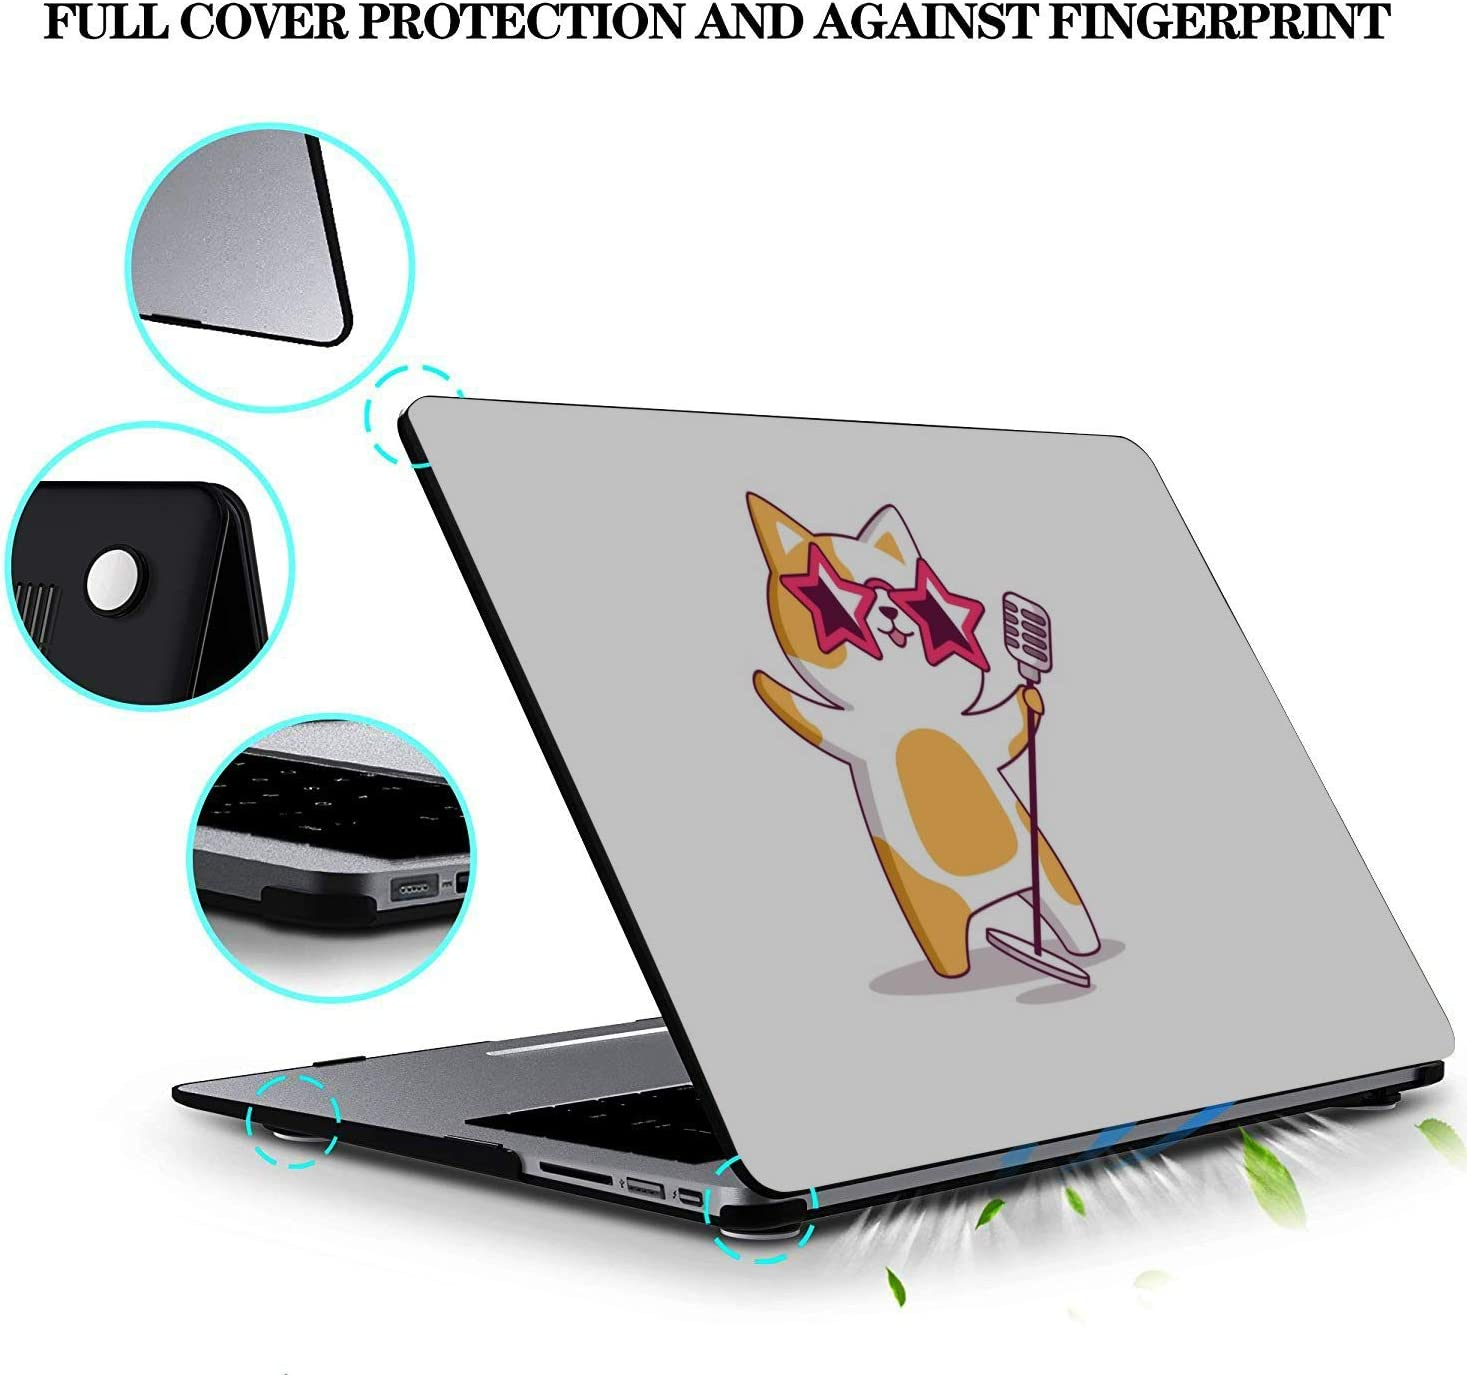 MacBook Covers Cat Singing Music Singer Meowing Plastic Hard Shell Compatible Mac Air 11 Pro 13 15 2018 MacBook Pro Accessories Protection for MacBook 2016-2019 Version